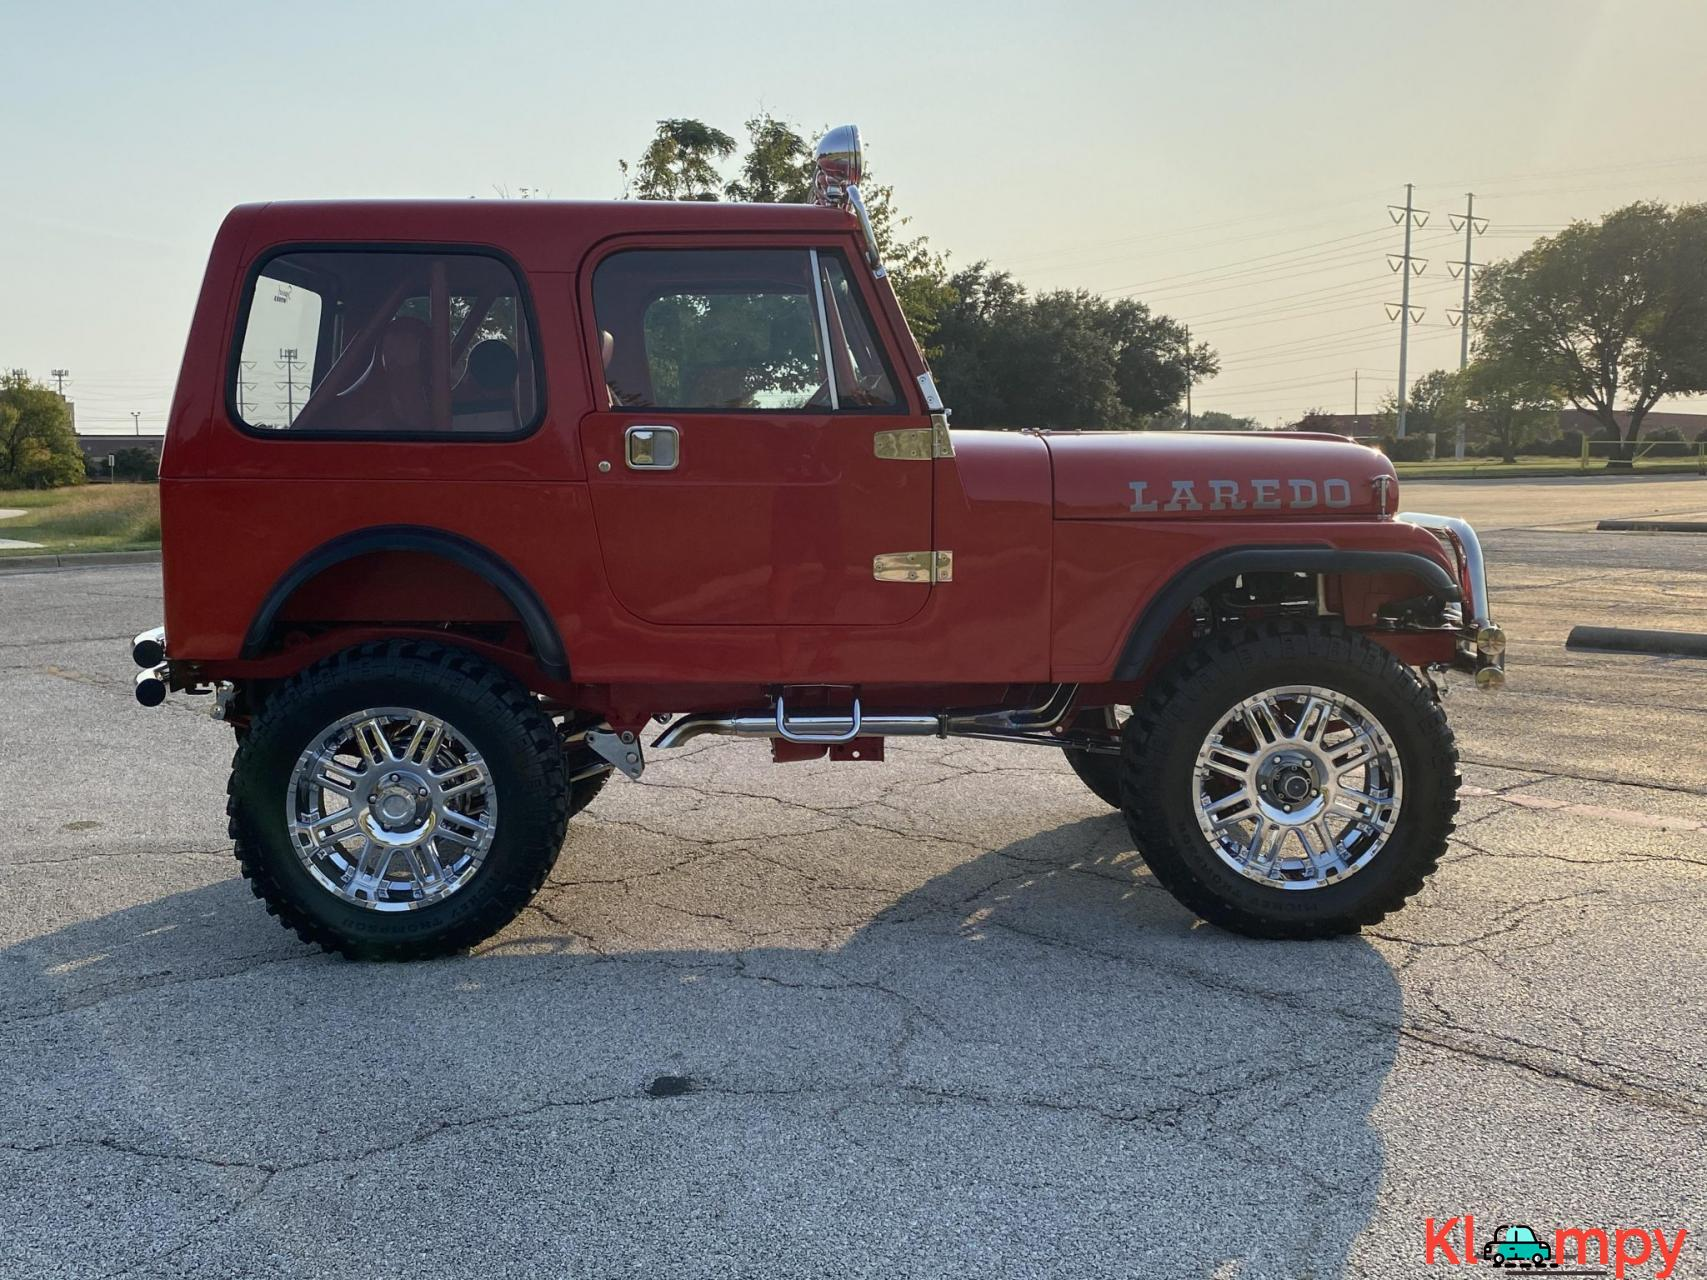 1983 Jeep CJ-7 Supercharged 350 V8 - 7/20